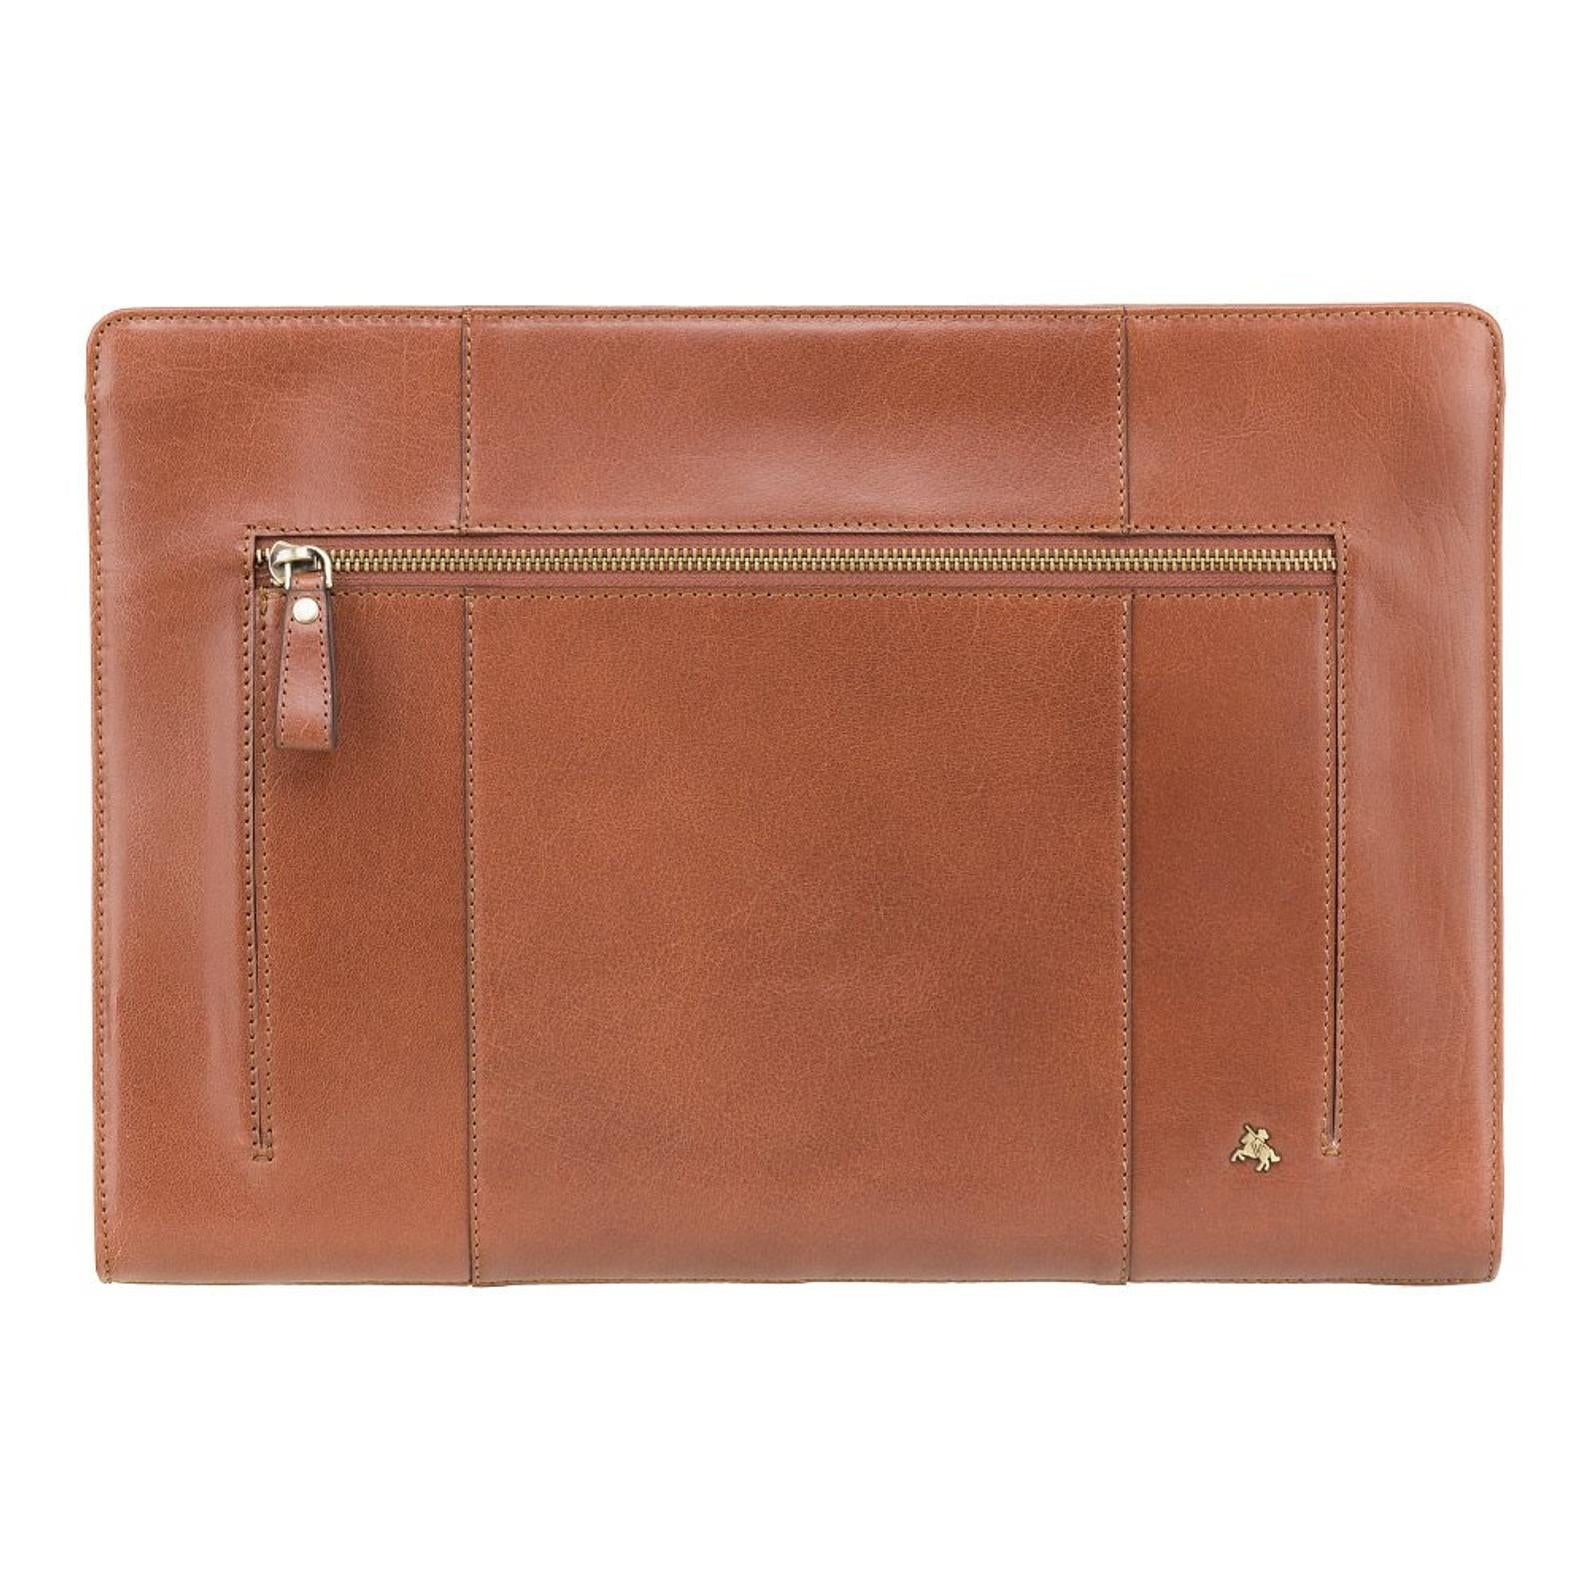 Document Holder - Hanz - Tan - Natural Full Grain Leather Under Arm Document Case A4 - Luxury Leather Case - ML26